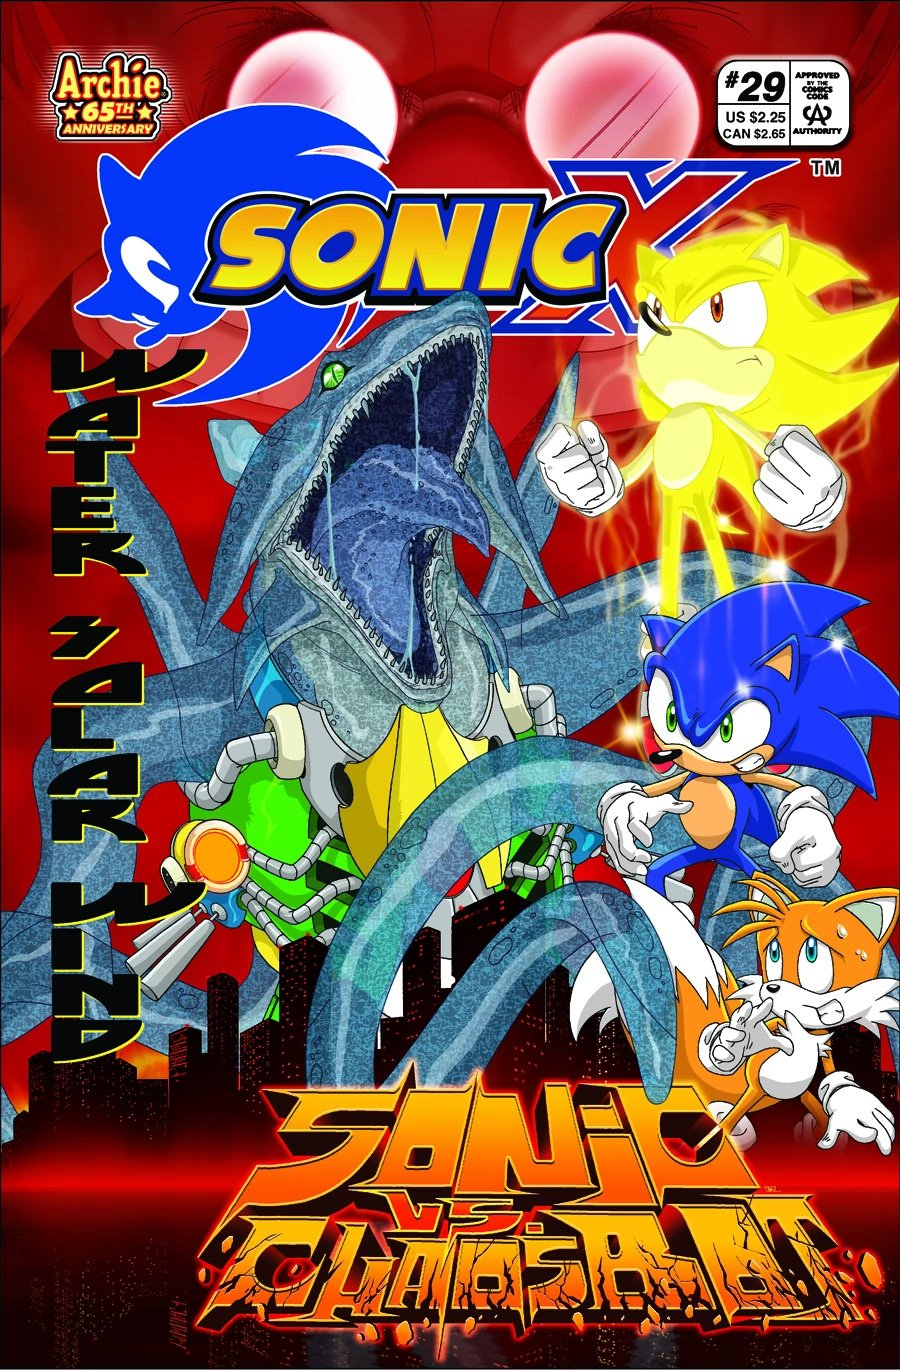 Sonic X 029 (March 2008)